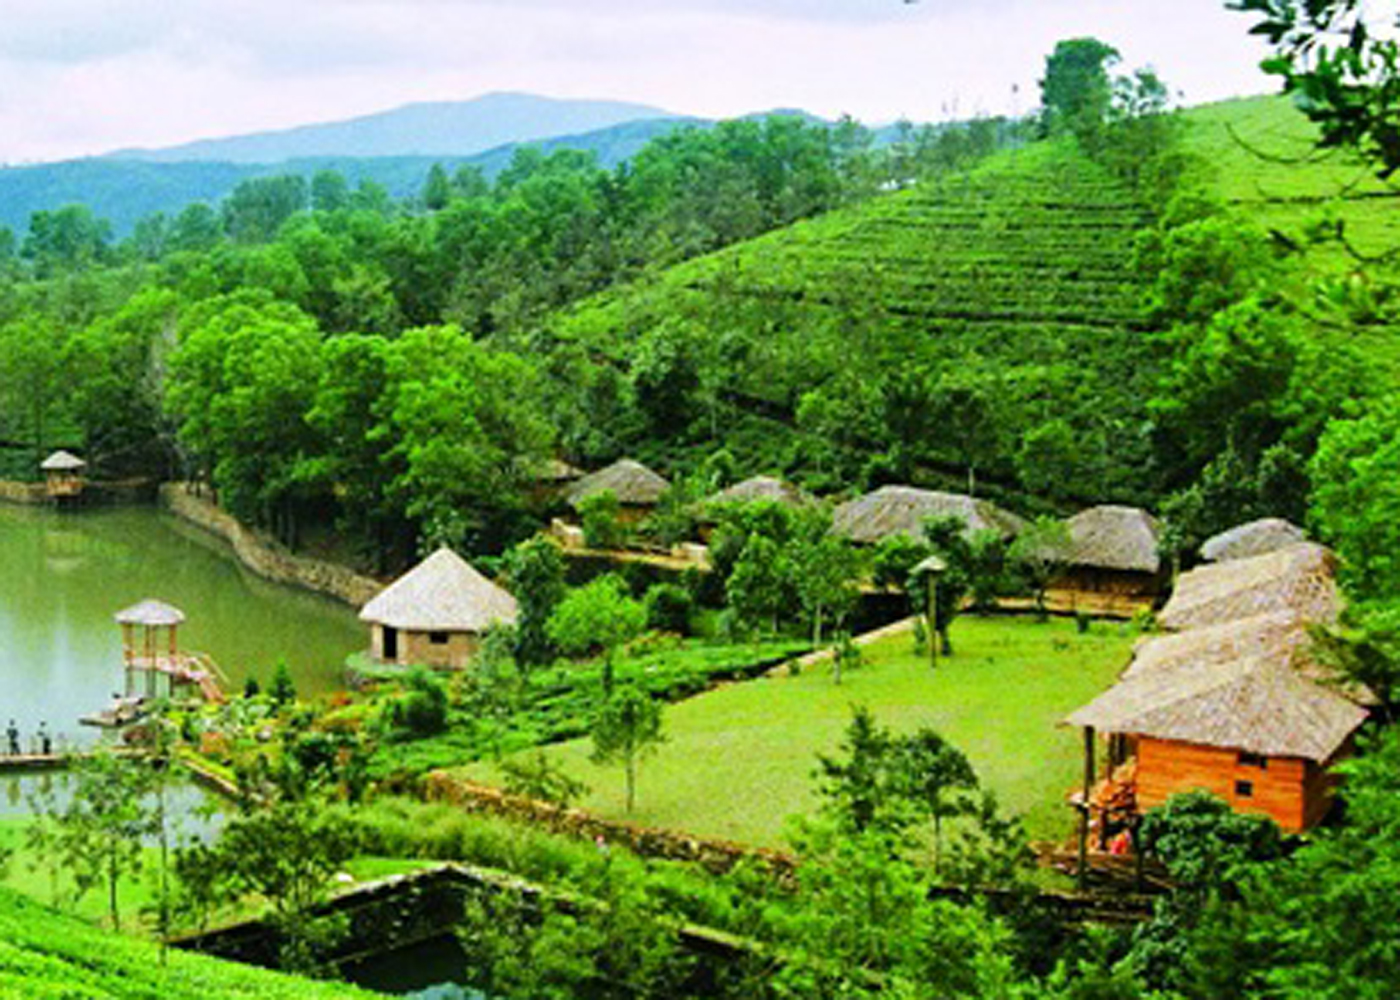 Kurangani,Thekkady.Pandikuzhi is a humble little village famous for its picturesque beauty. Its captivating natural landscape, the thrilling terrain, a pristine stream of water flowing through the val-RENGHA HOLIDAYS